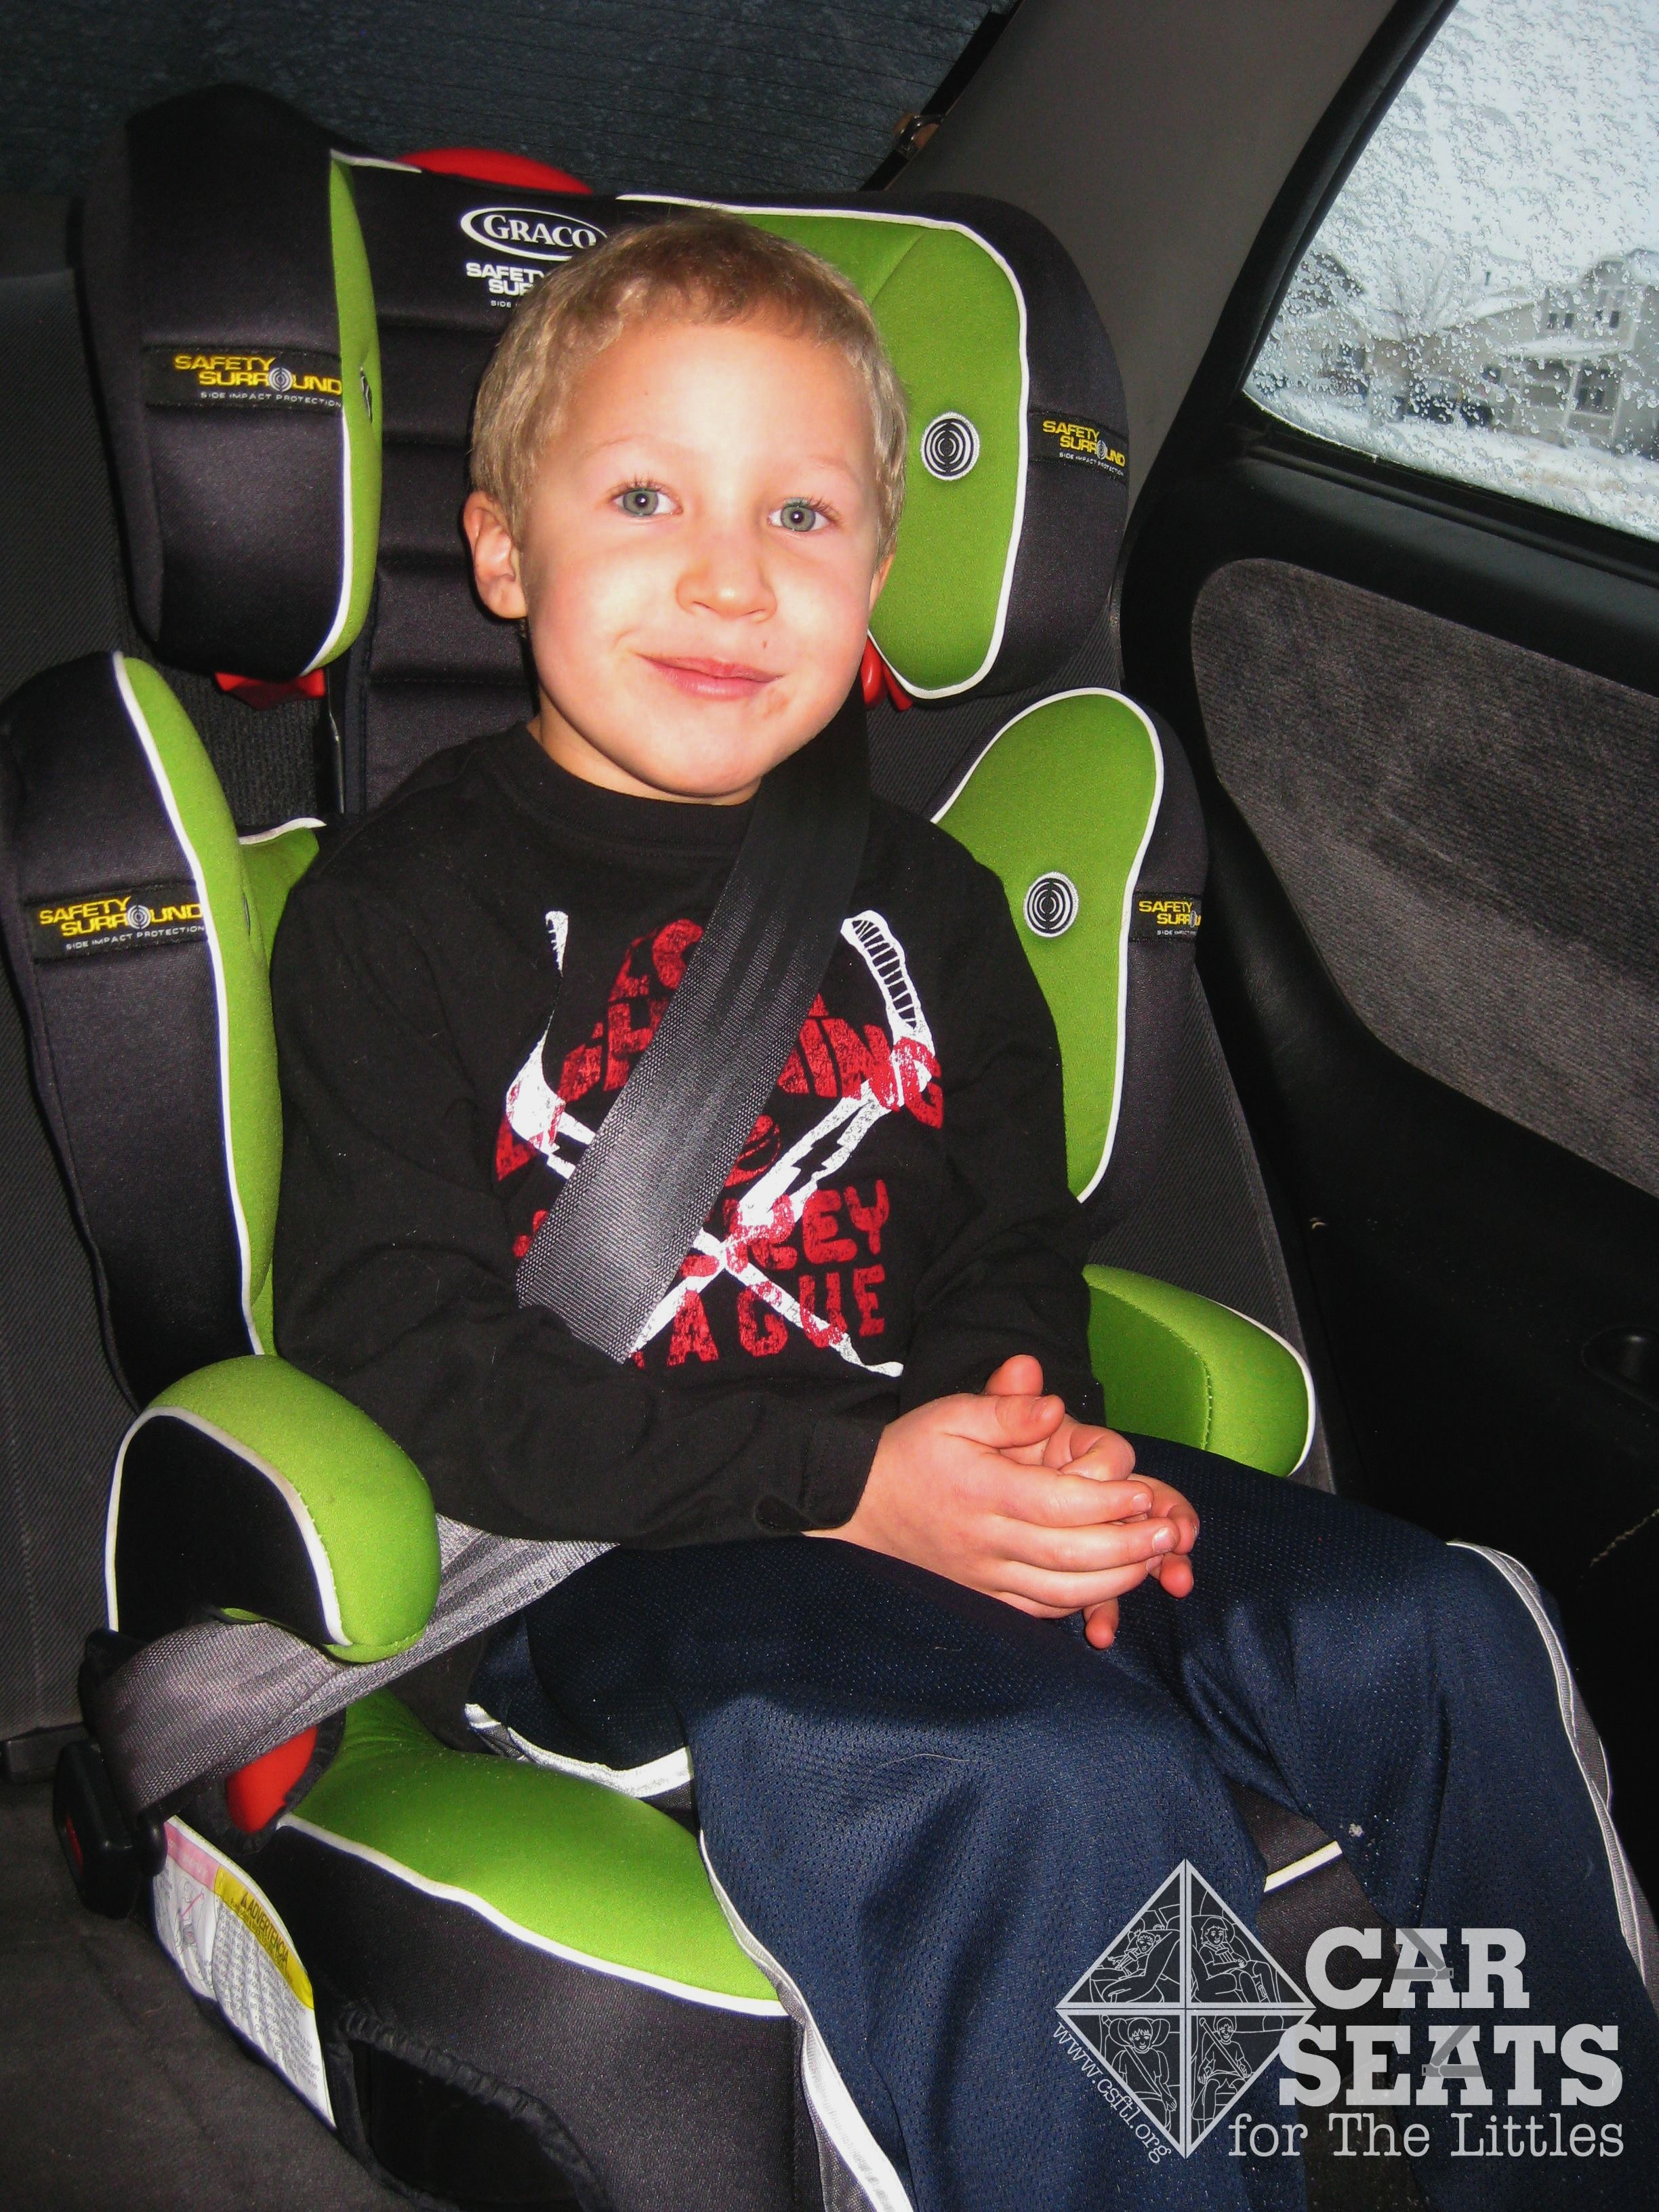 Harness Or Booster When To Make The Switch Car Seats For The Littles Car Seats Best Booster Seats Toddler Booster Seat